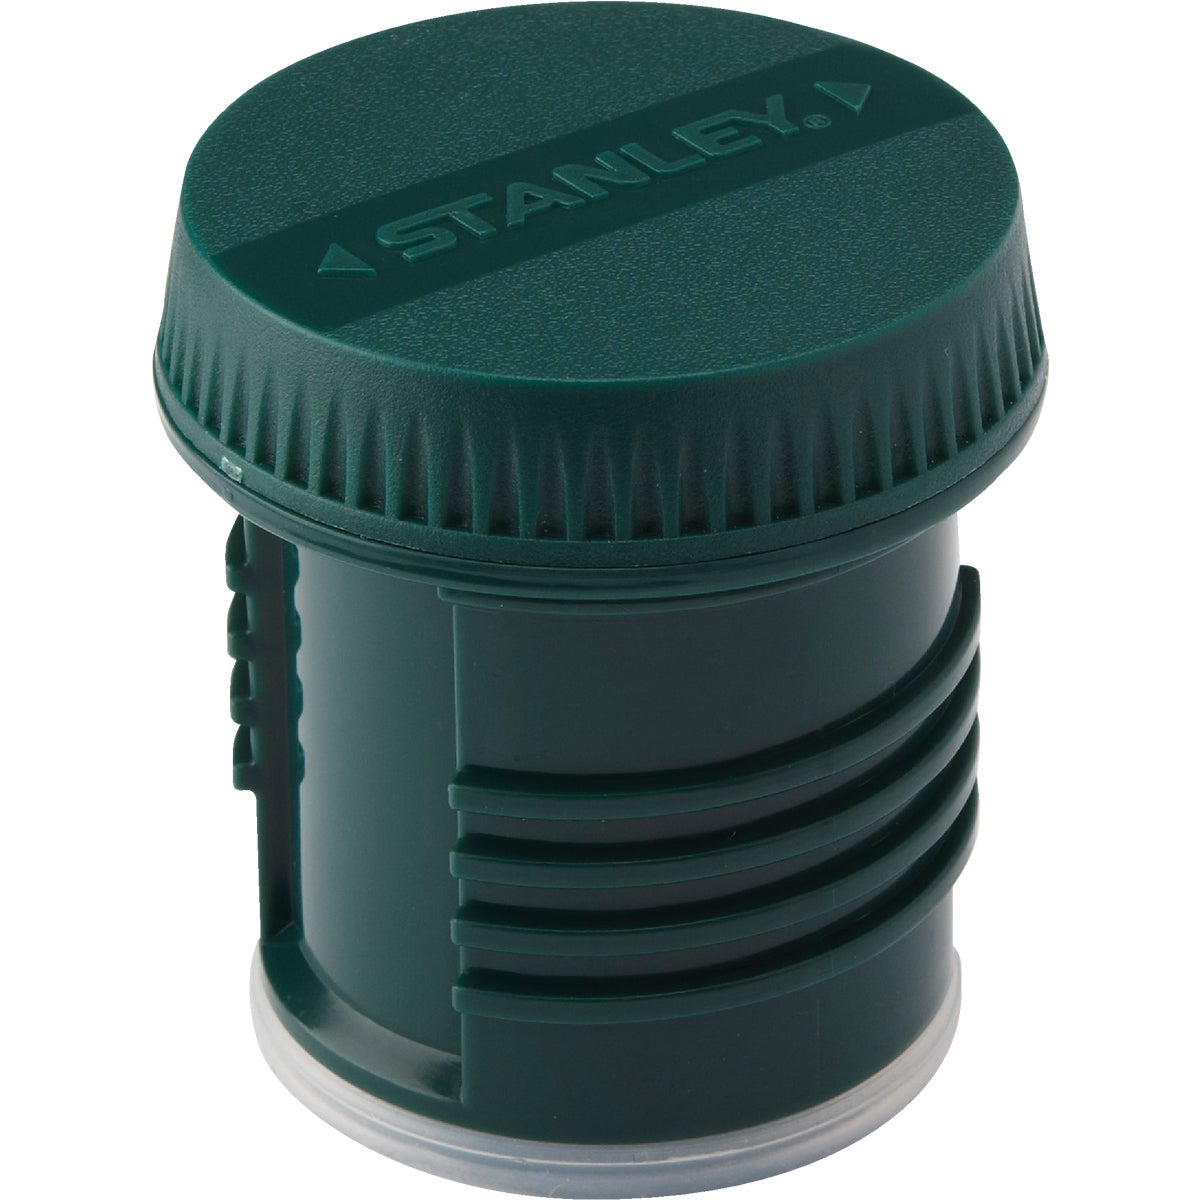 GREEN 1&2QT STOPPER - ACP0050-632 by Aladdin Pmi